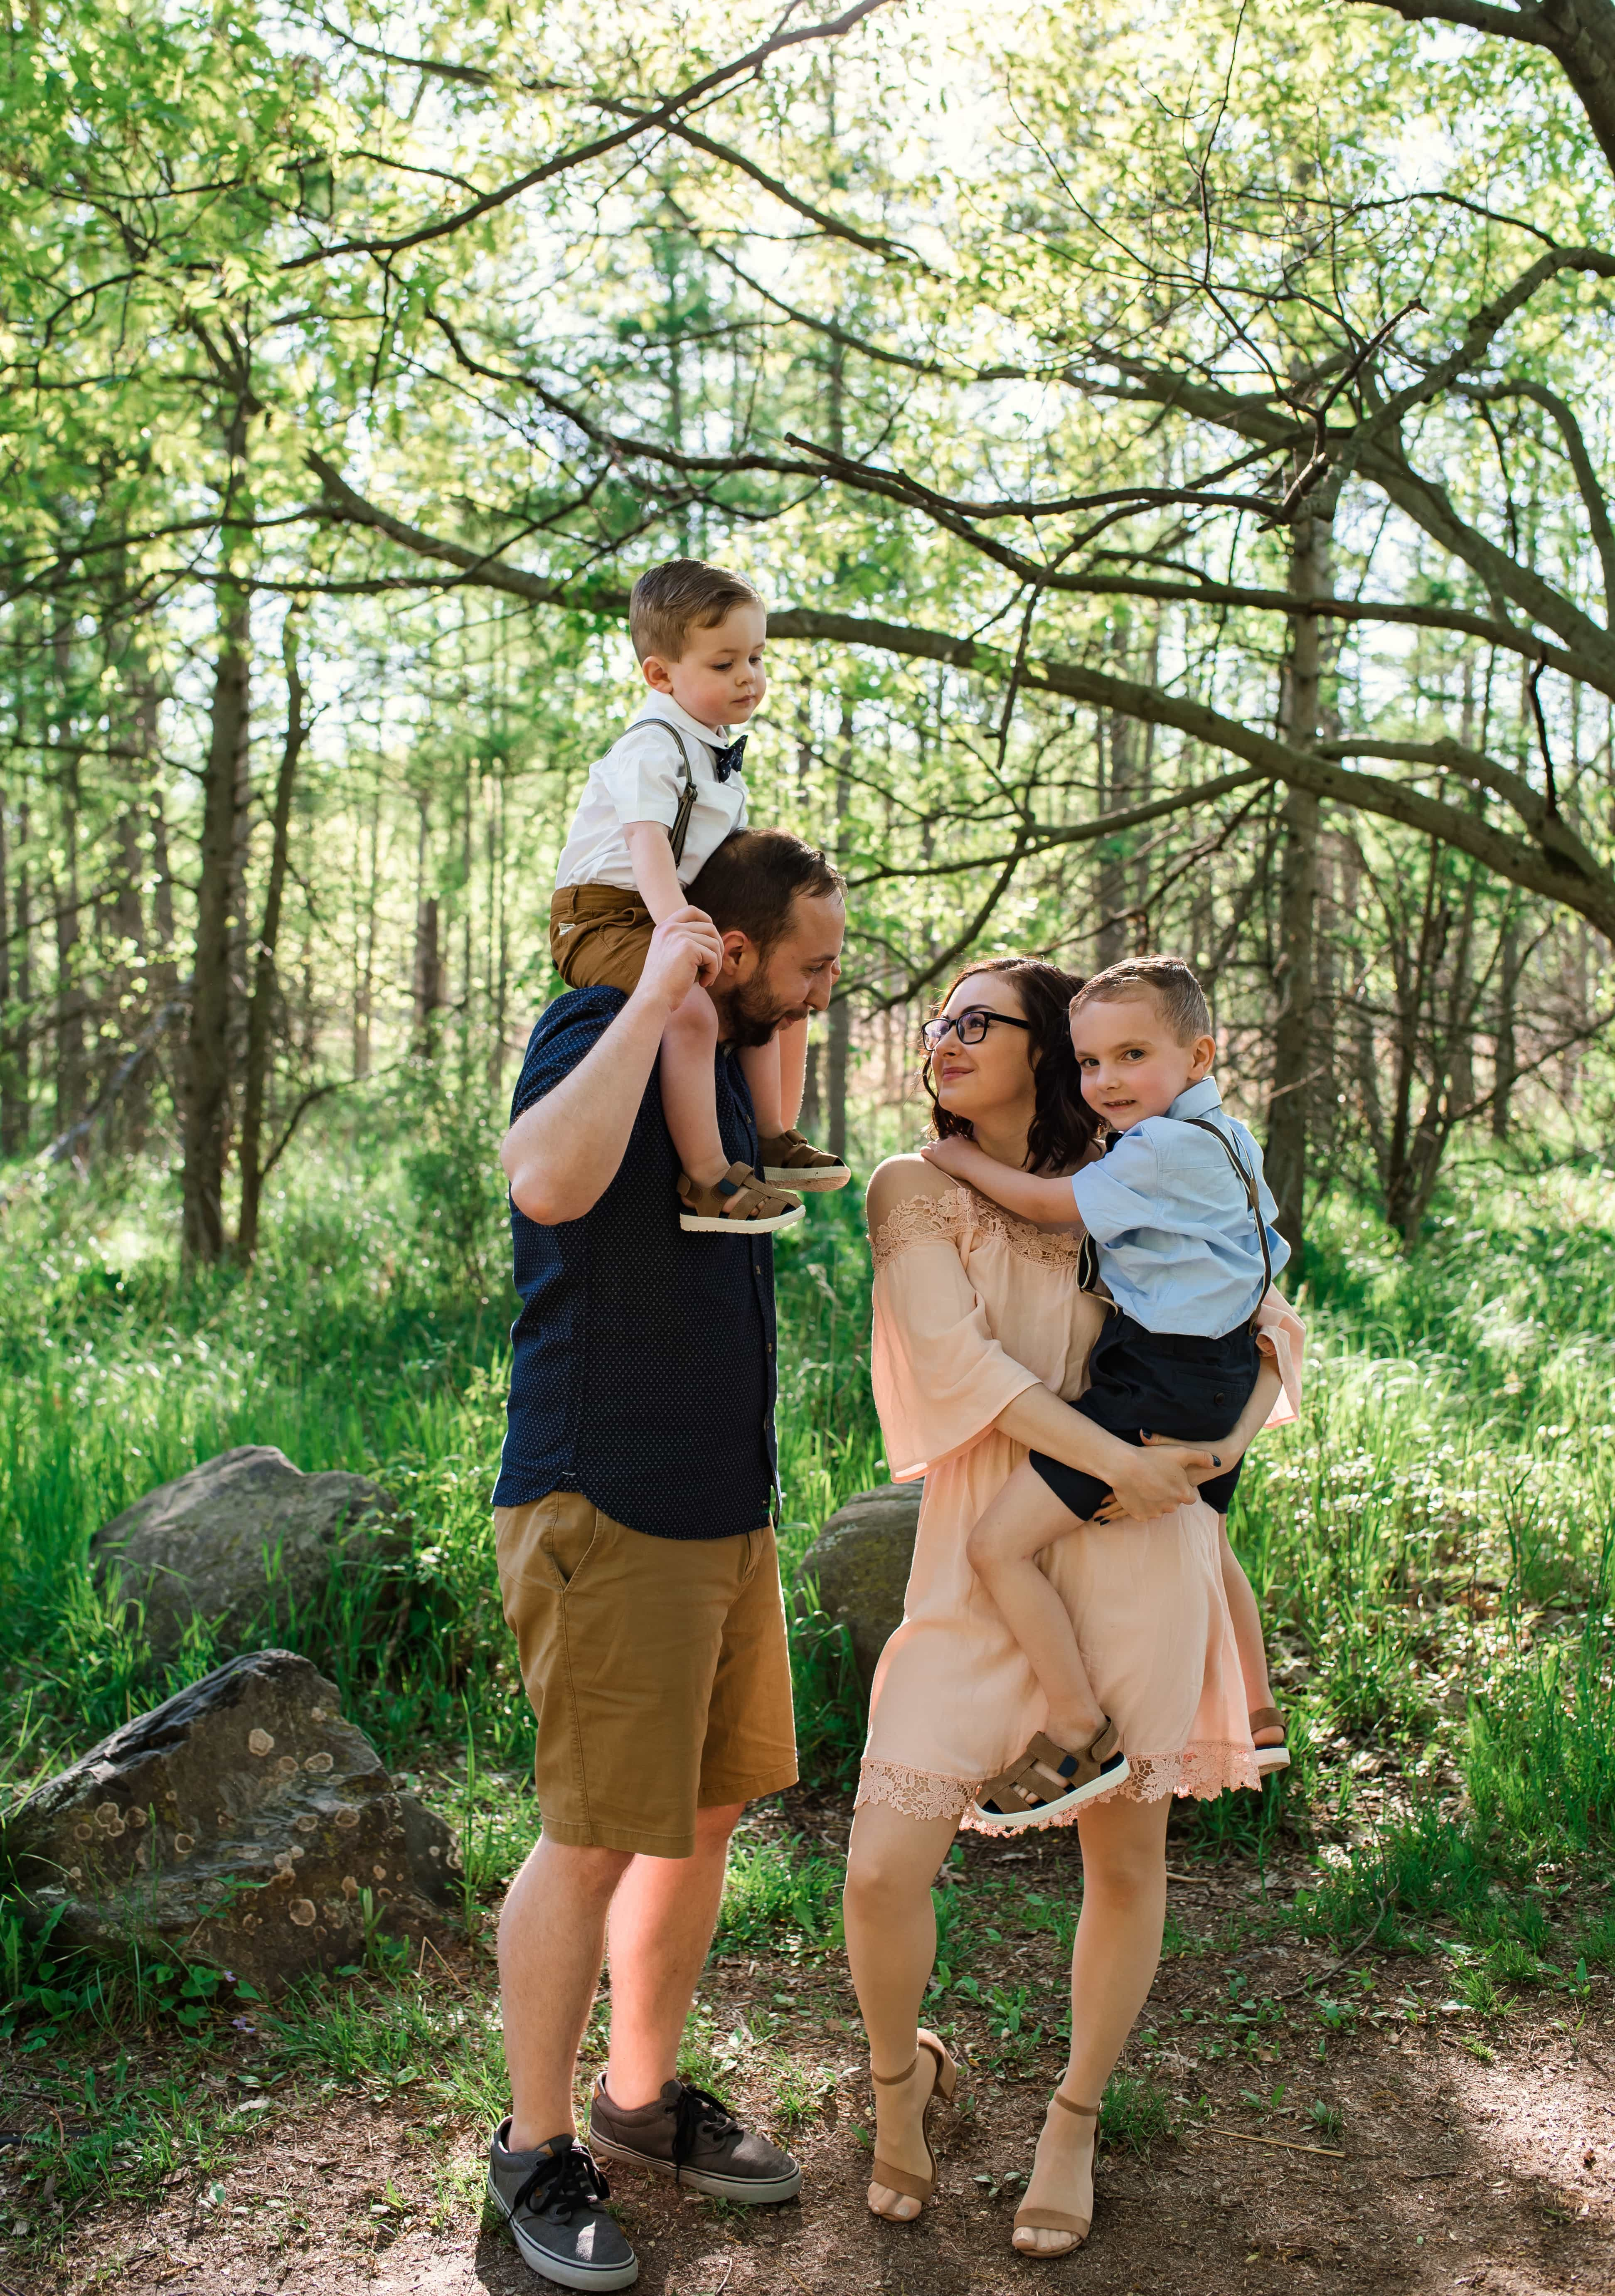 Outdoor Family Photography Kensington Metro Park